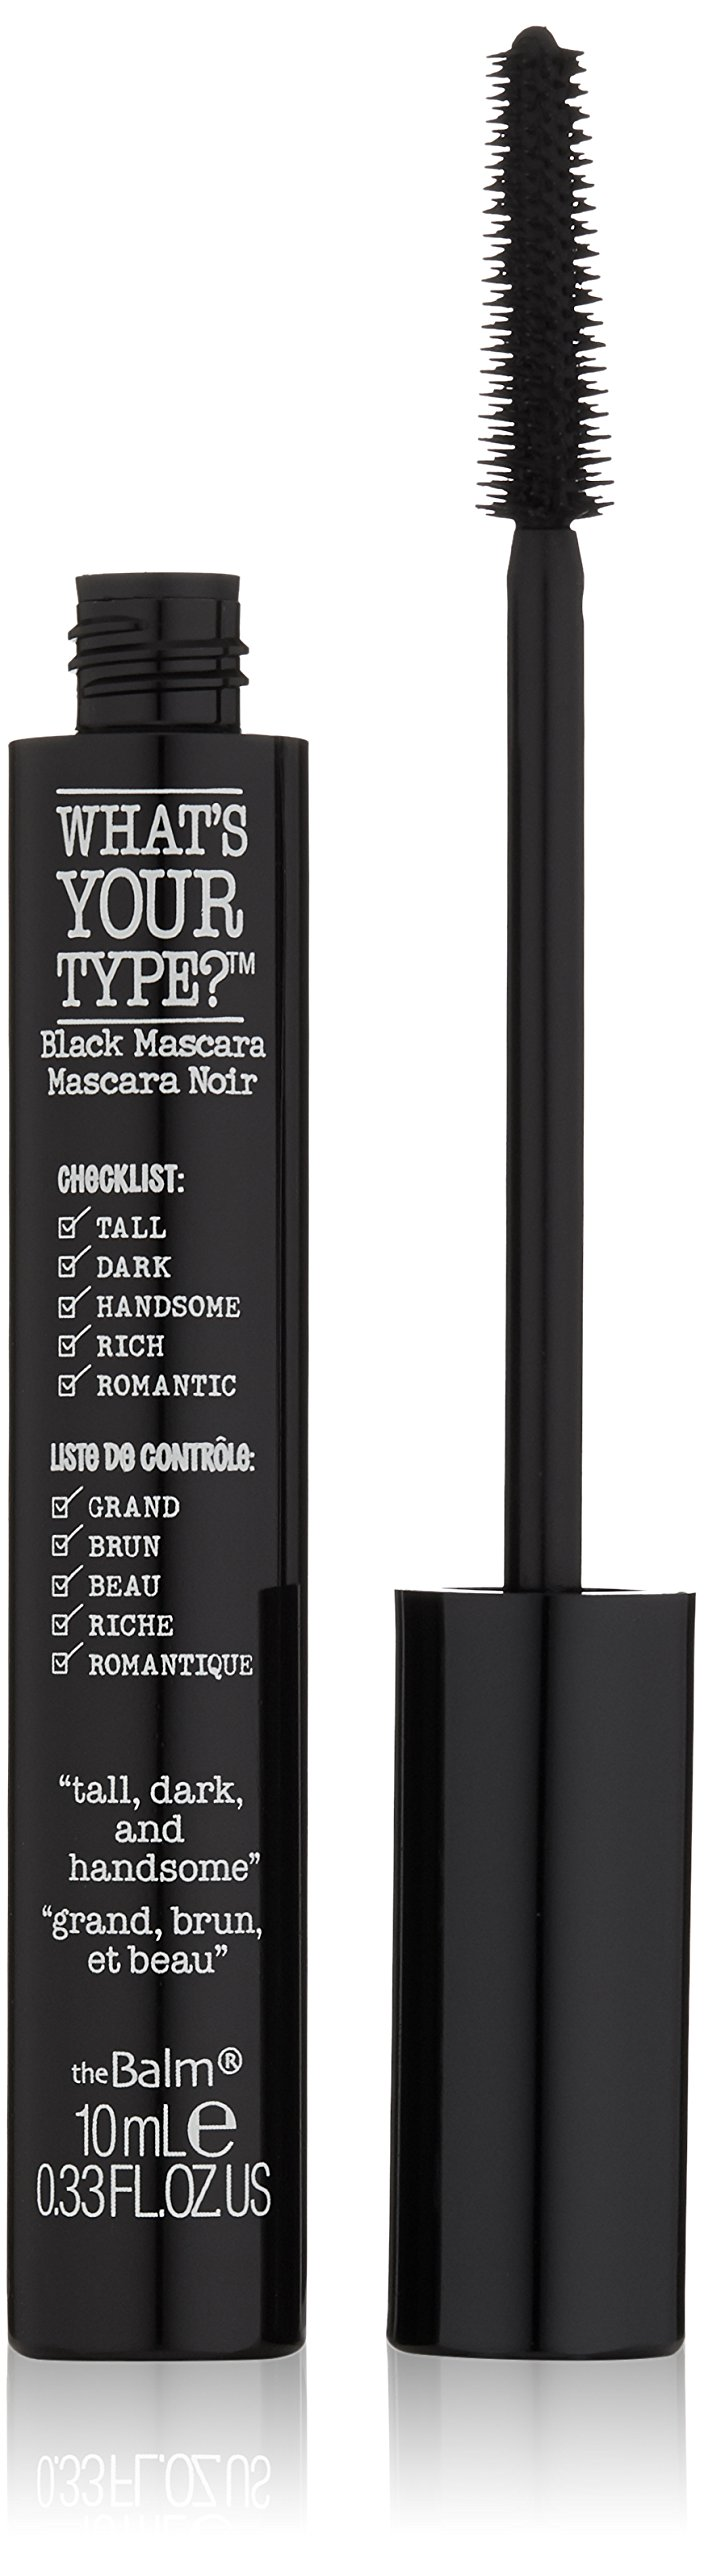 theBalm What's Your Type? Tall, Dark and Handsome Mascara, Black